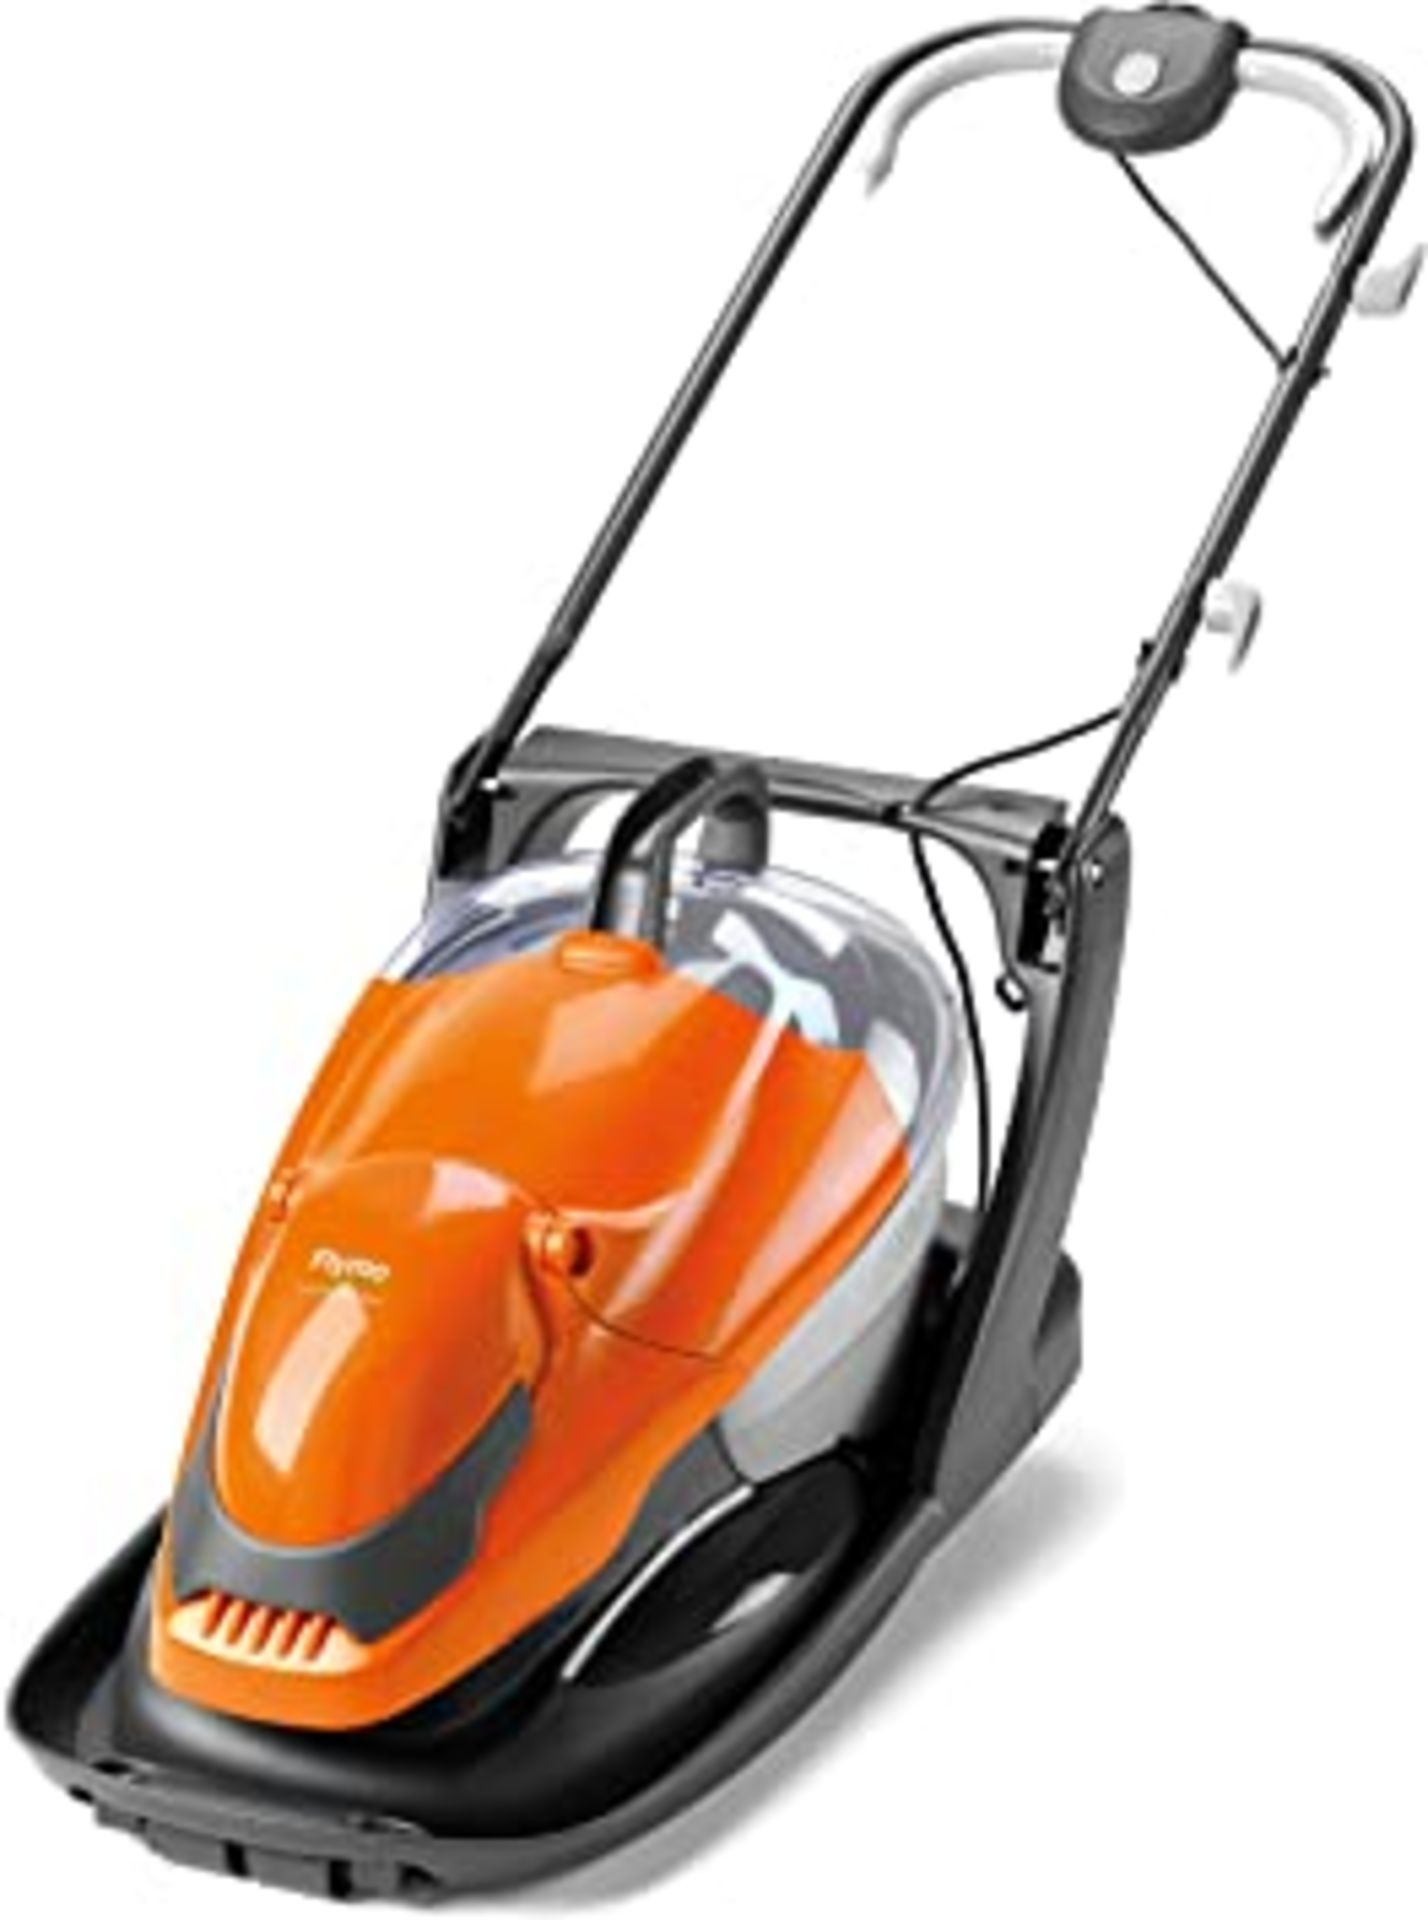 (P6) 1x Flymo EasiGlide 300 Hover Collect Lawnmower RRP £99. New Item – Damage To Box. - Image 2 of 4